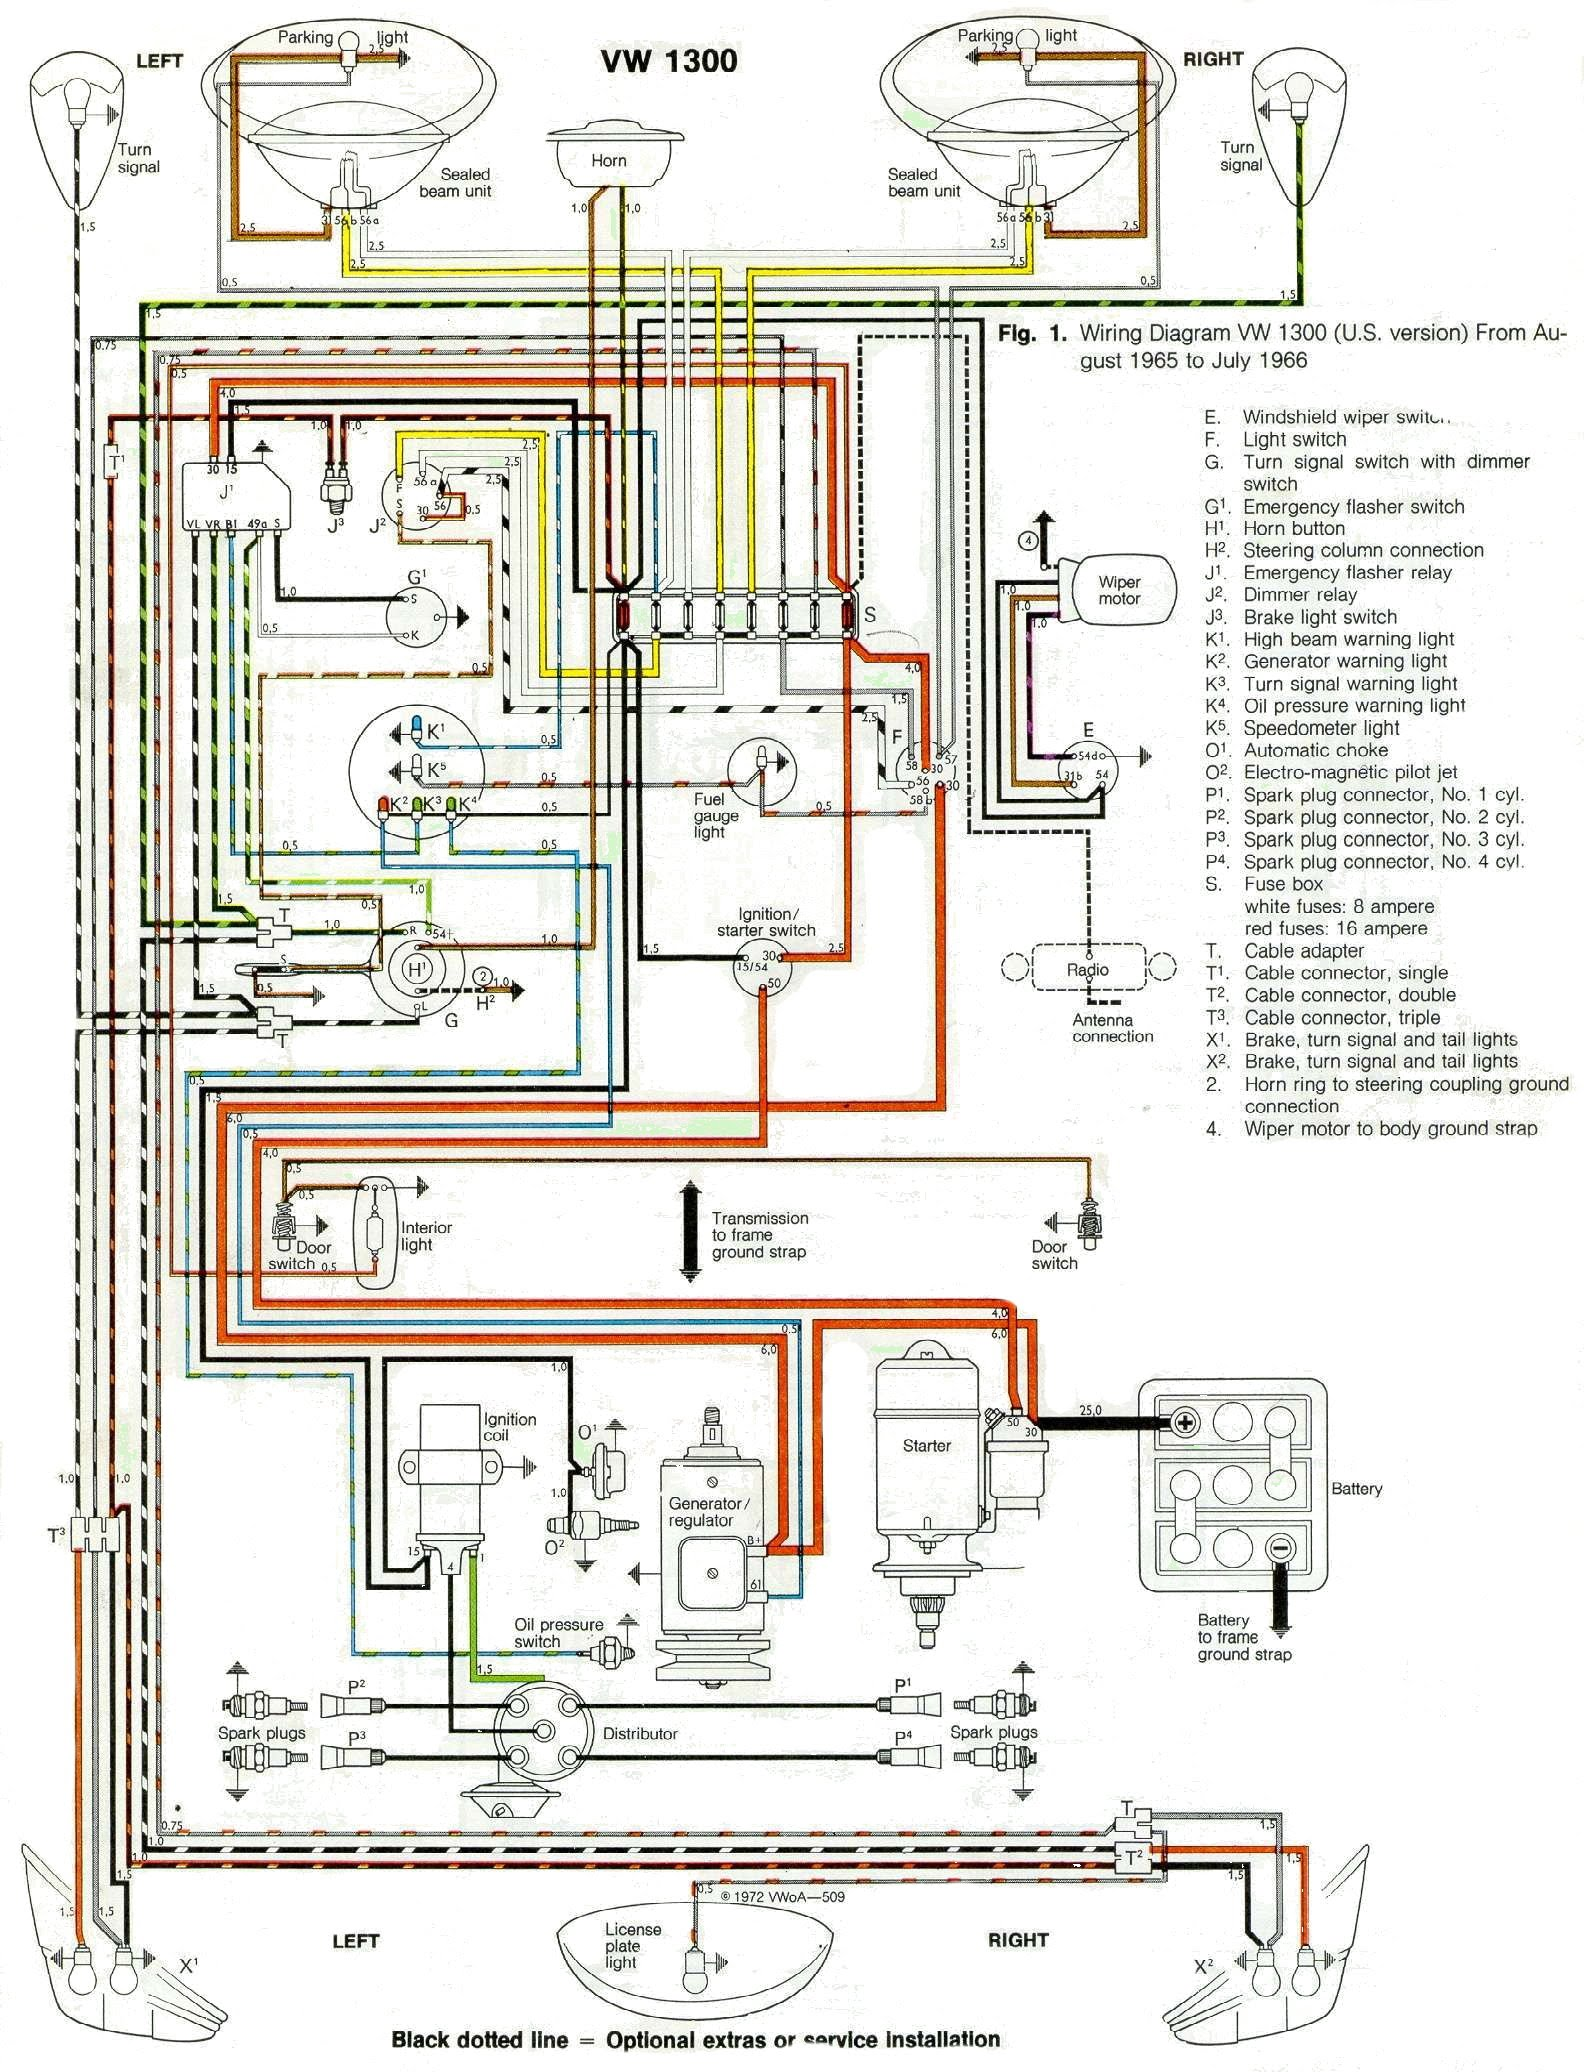 1965 volkswagen 1300 city car wiring diagram diagrams 19191168 vw golf wiring diagram electrical wiring vw citi golf wiring diagram at virtualis.co